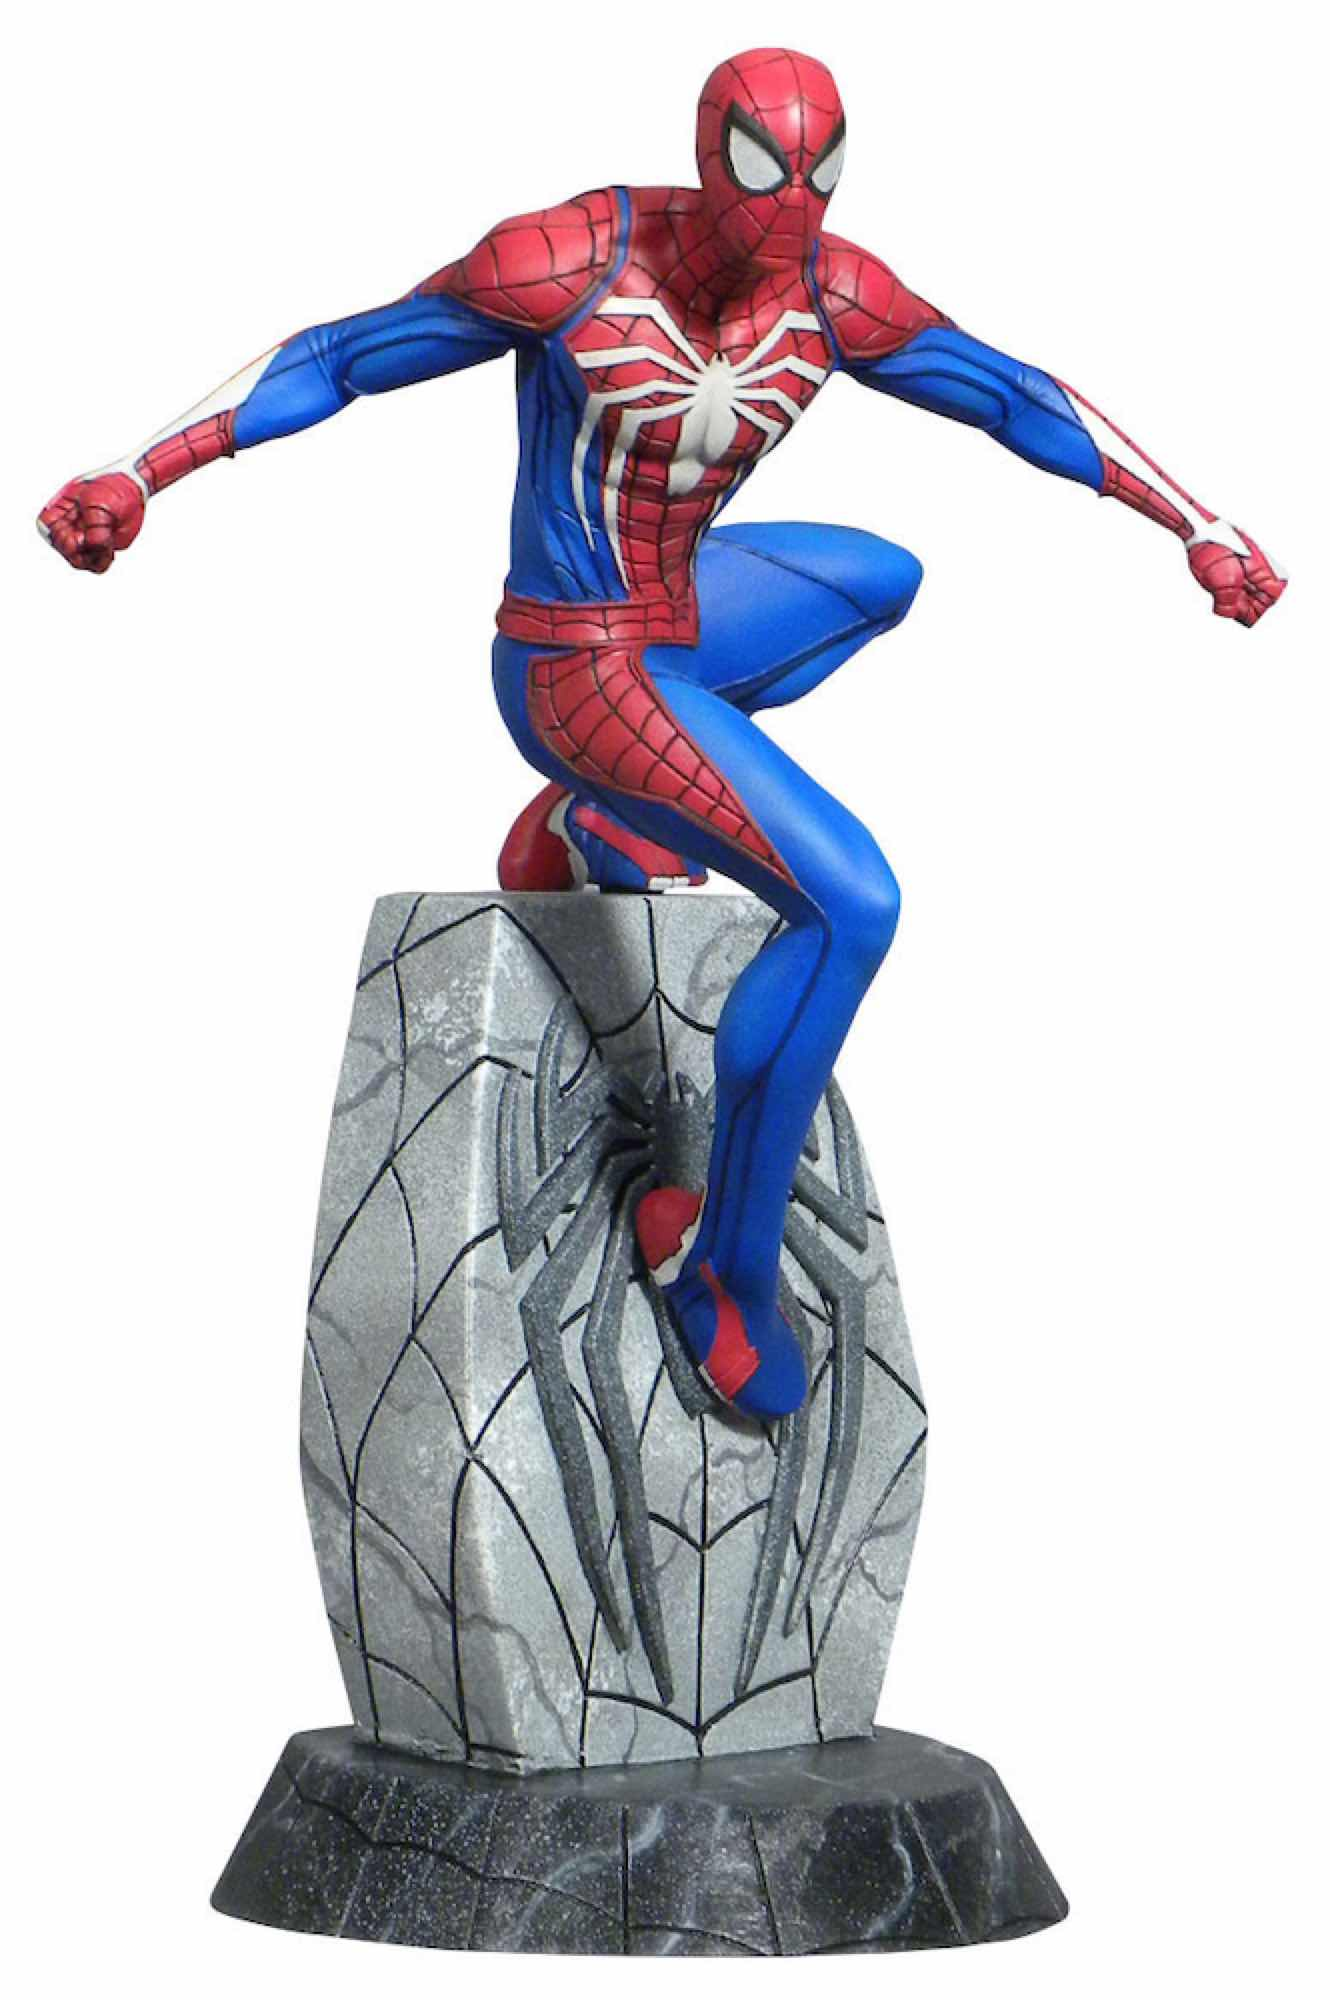 SPIDER-MAN FIGURA 25 CM PVC MARVEL VIDEO GAME GALLERY